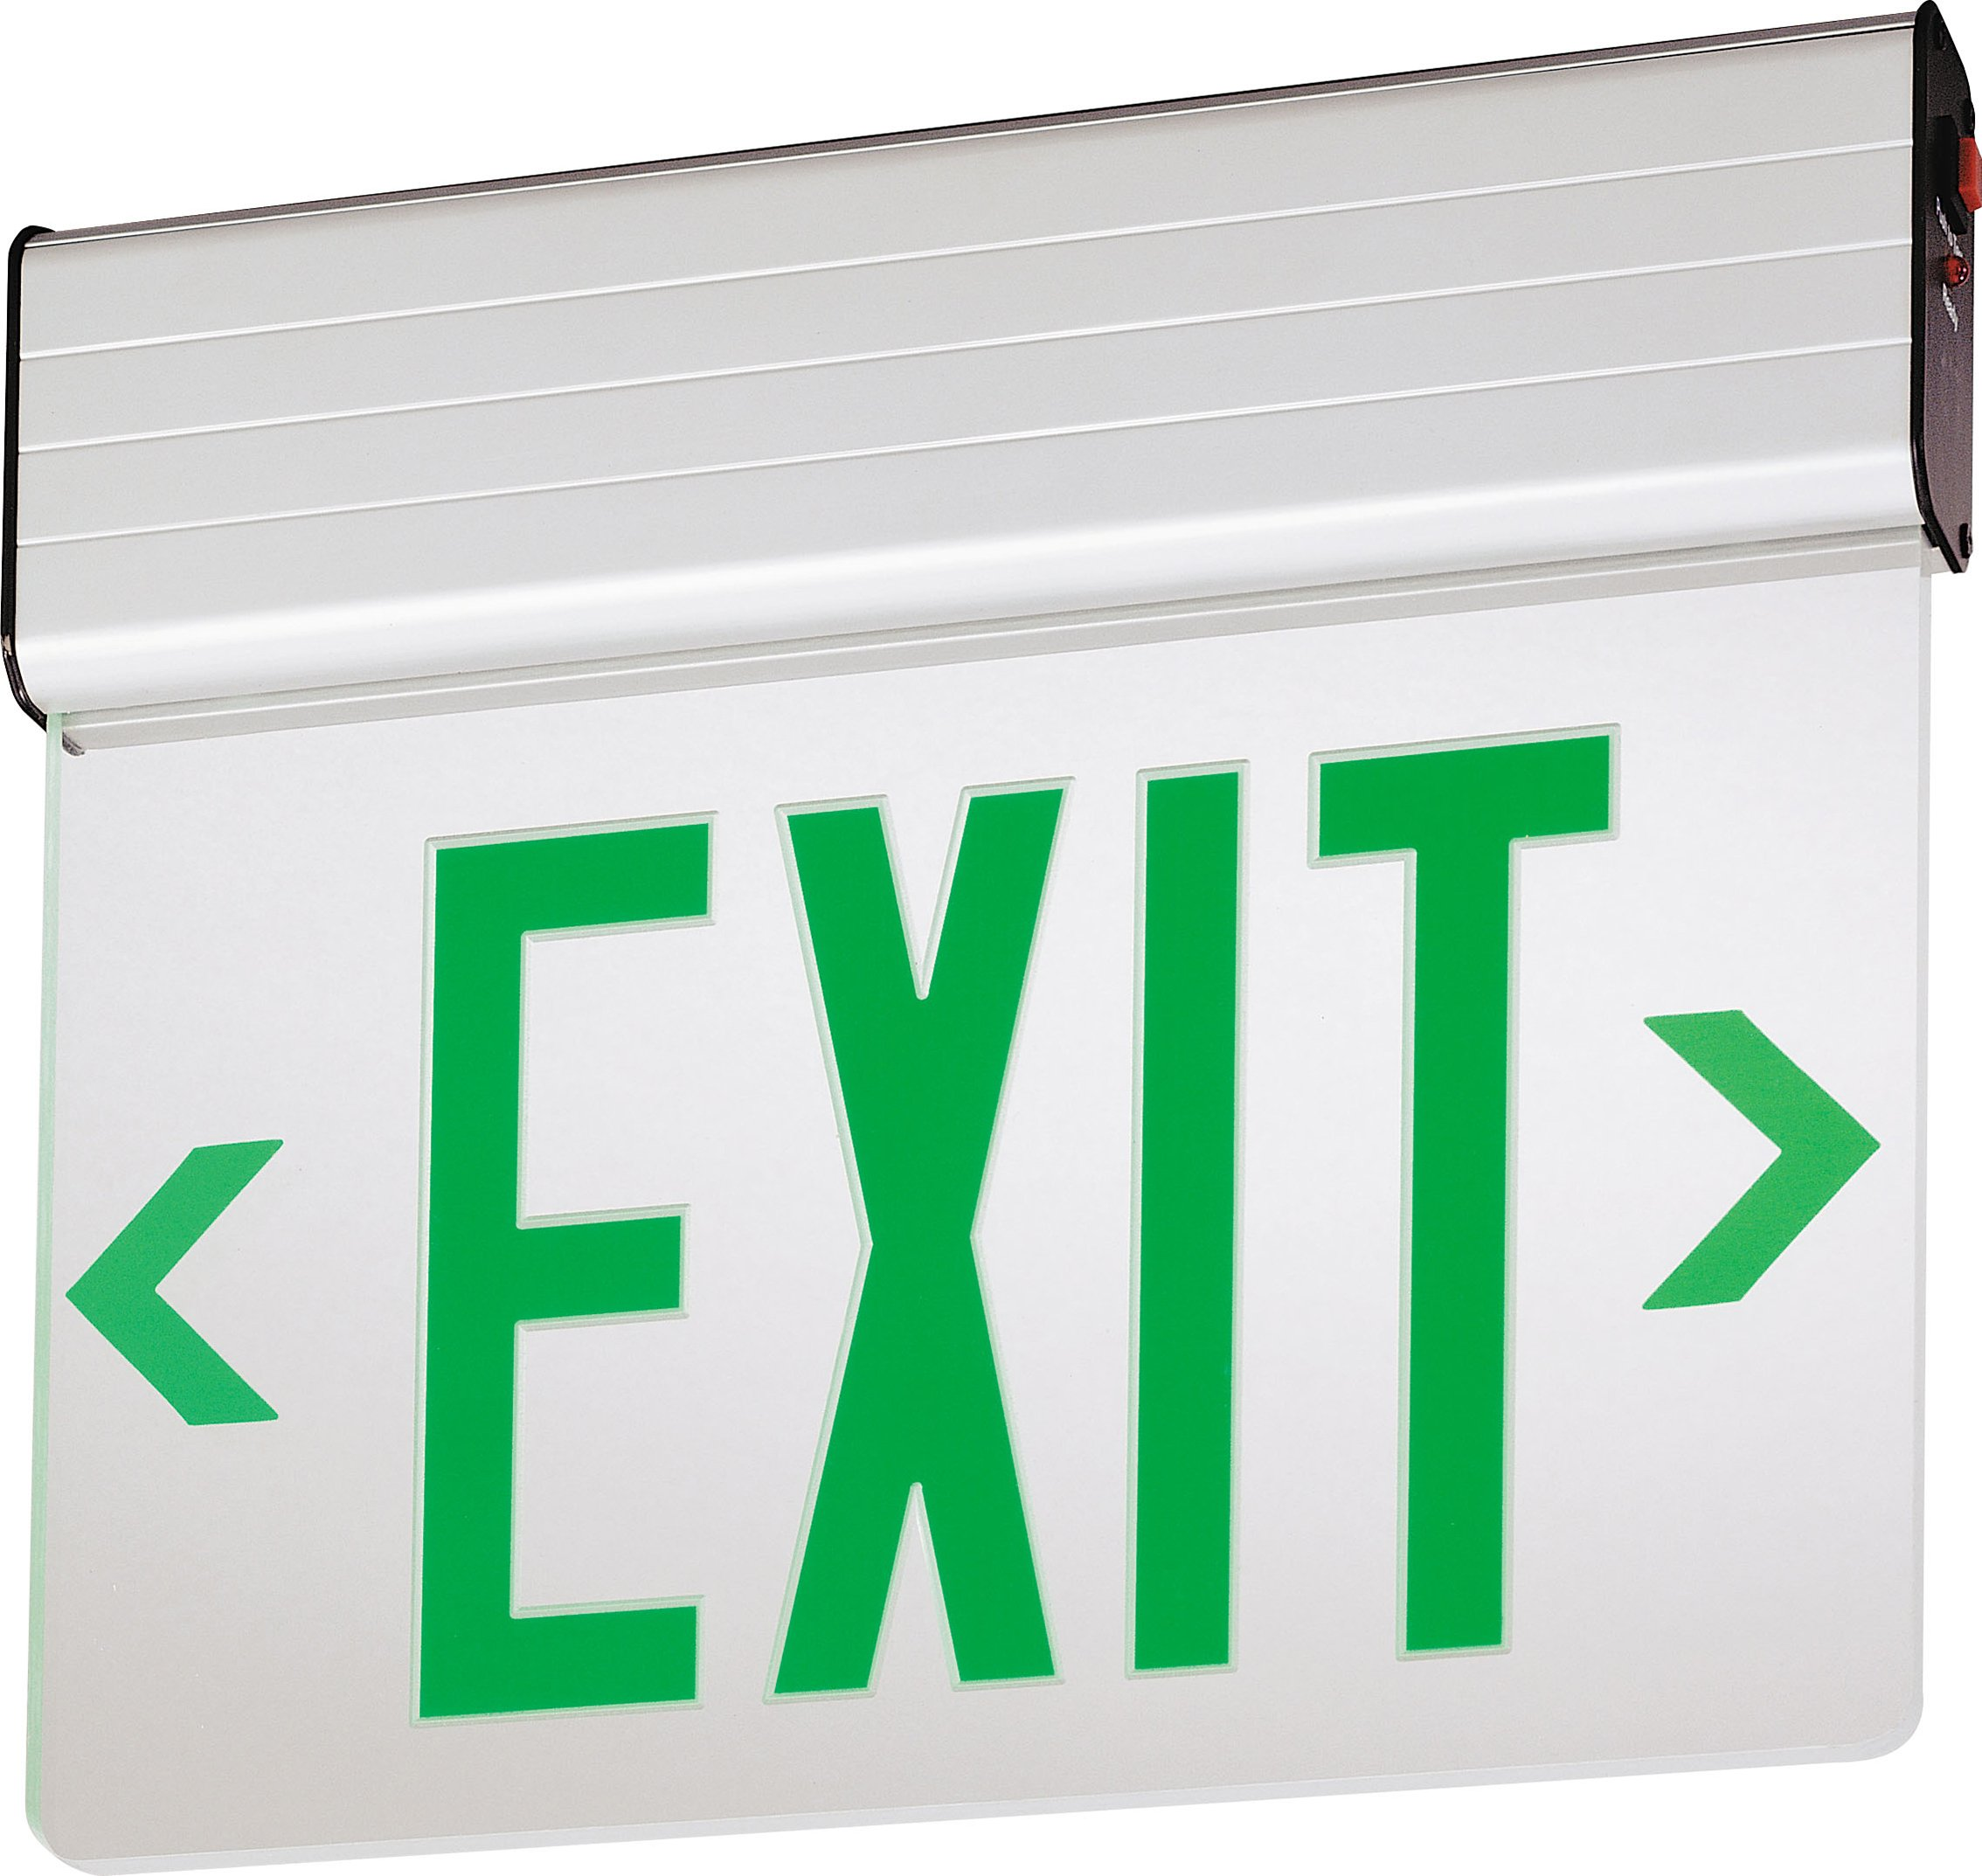 Lithonia Lighting EDG 2 G EL M6 Aluminum LED Emergency Exit Sign by Lithonia Lighting